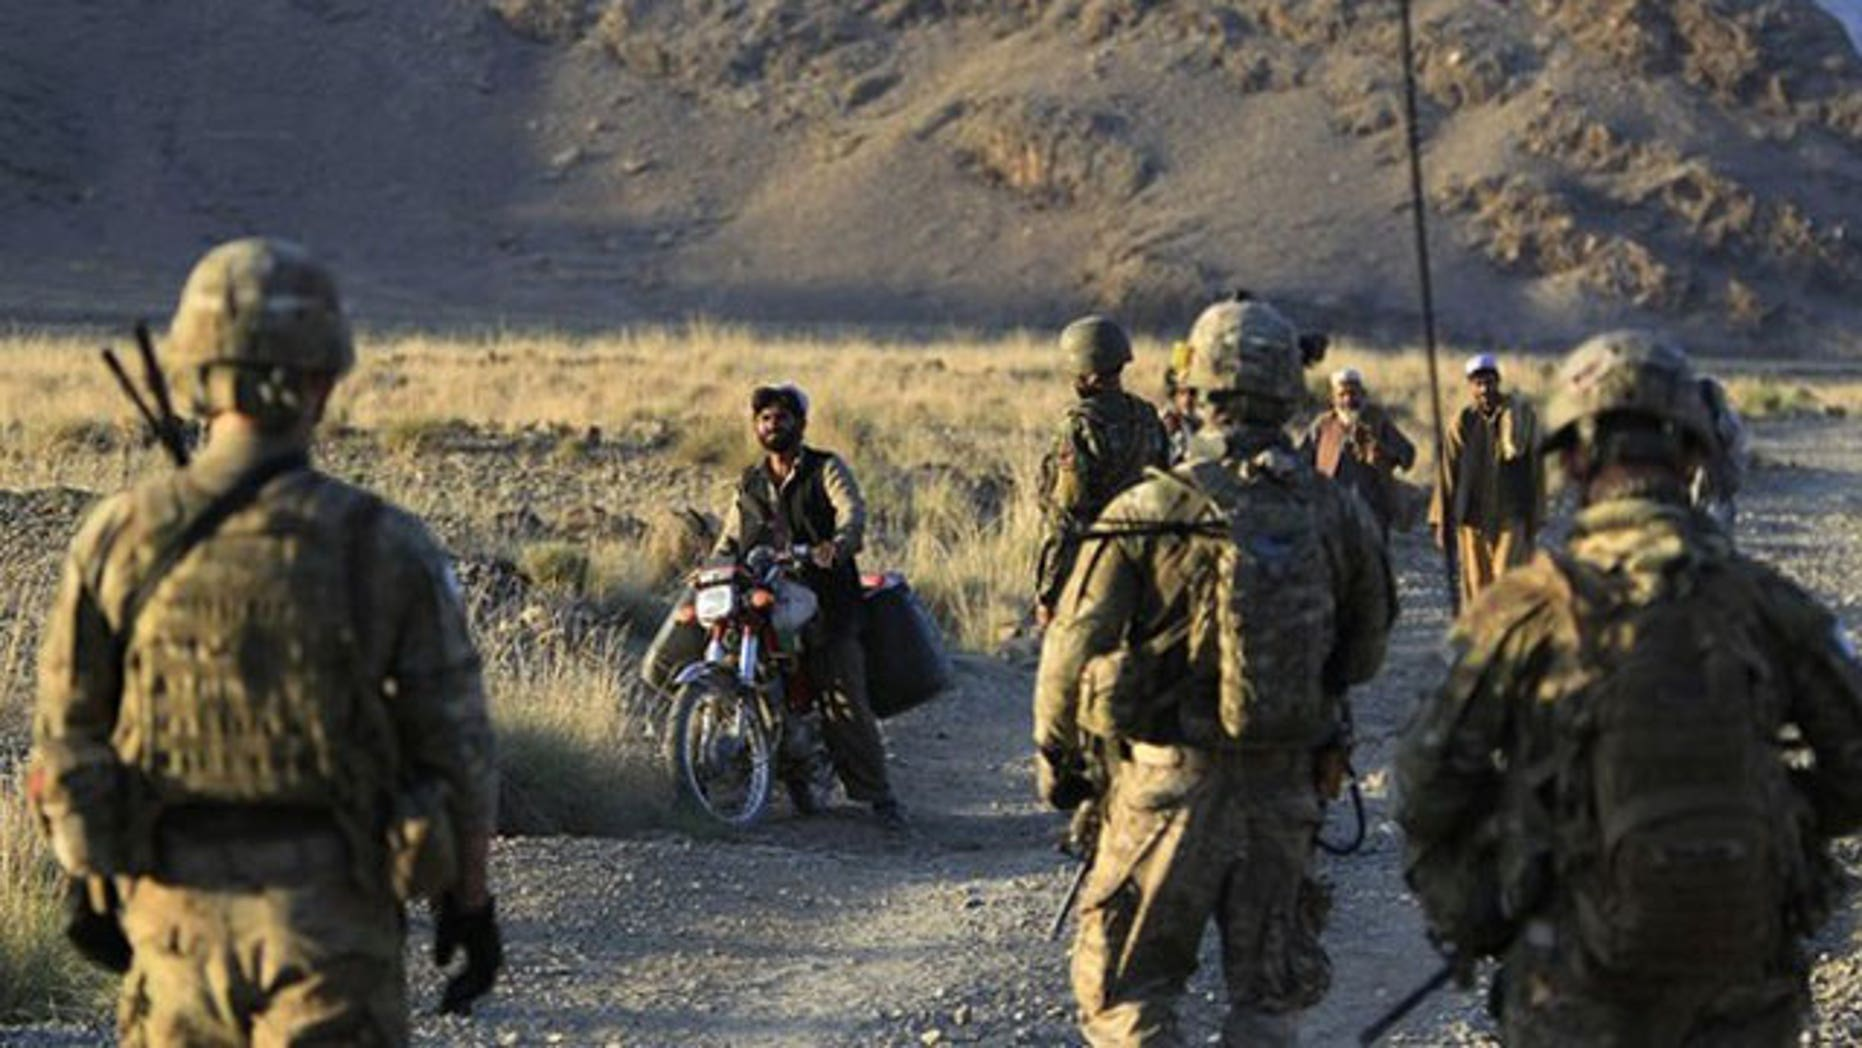 """October 2: U.S. soldiers from Alpha Co, 2nd Battalion 35th Infantry, Task Force """"Cacti"""" and Afghan soldiers check villagers along a road during a joint military patrol in Walay valley, near the Afghanistan-Pakistanborder in Kunar province."""